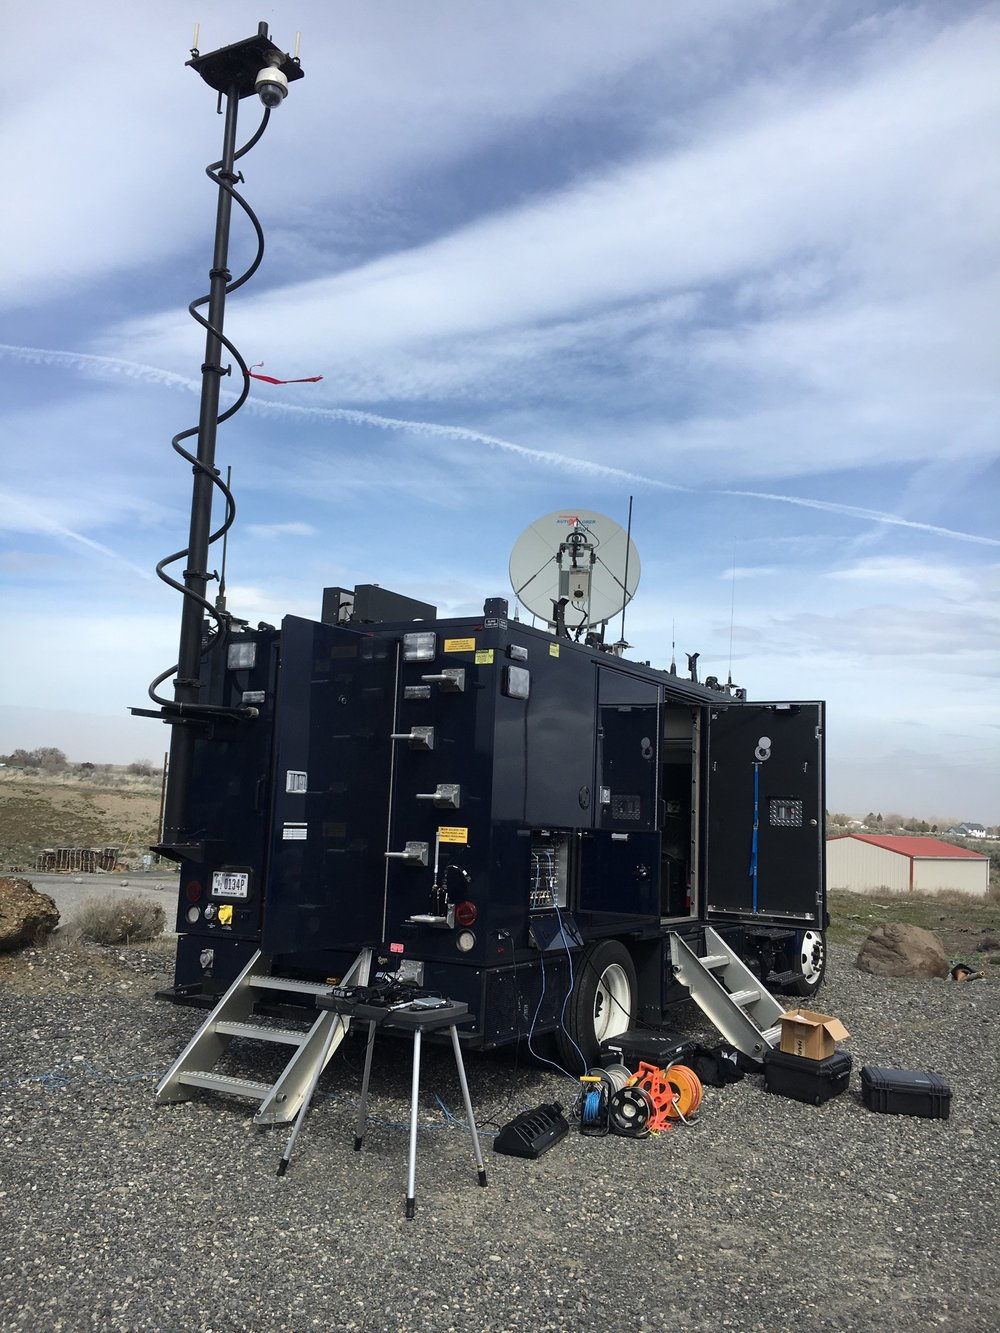 The Oregon National Guard's Civil Support Team brought out an impressive mobile communications unit for Tuesday's graded Columbia Generating Station nuclear emergency exercise. This unit was set up in Umatilla County, where state teams were in the field taking soil, water, and vegetation samples as part of the exercise. -